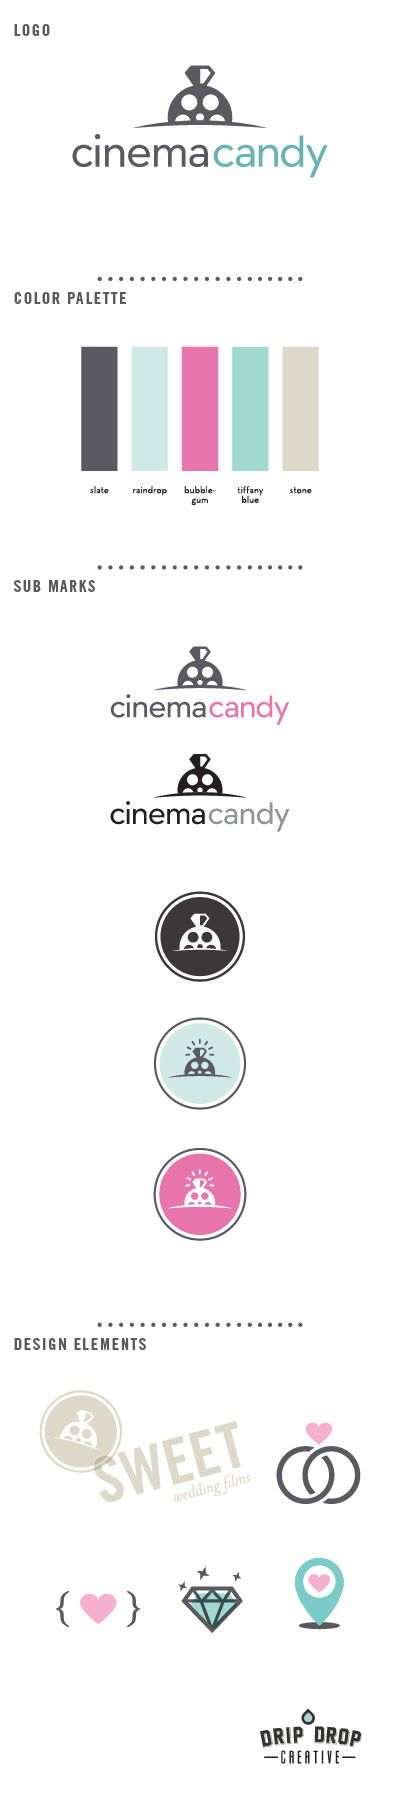 Cinema Candy Brand, logo, color palette, design elements, wedding branding